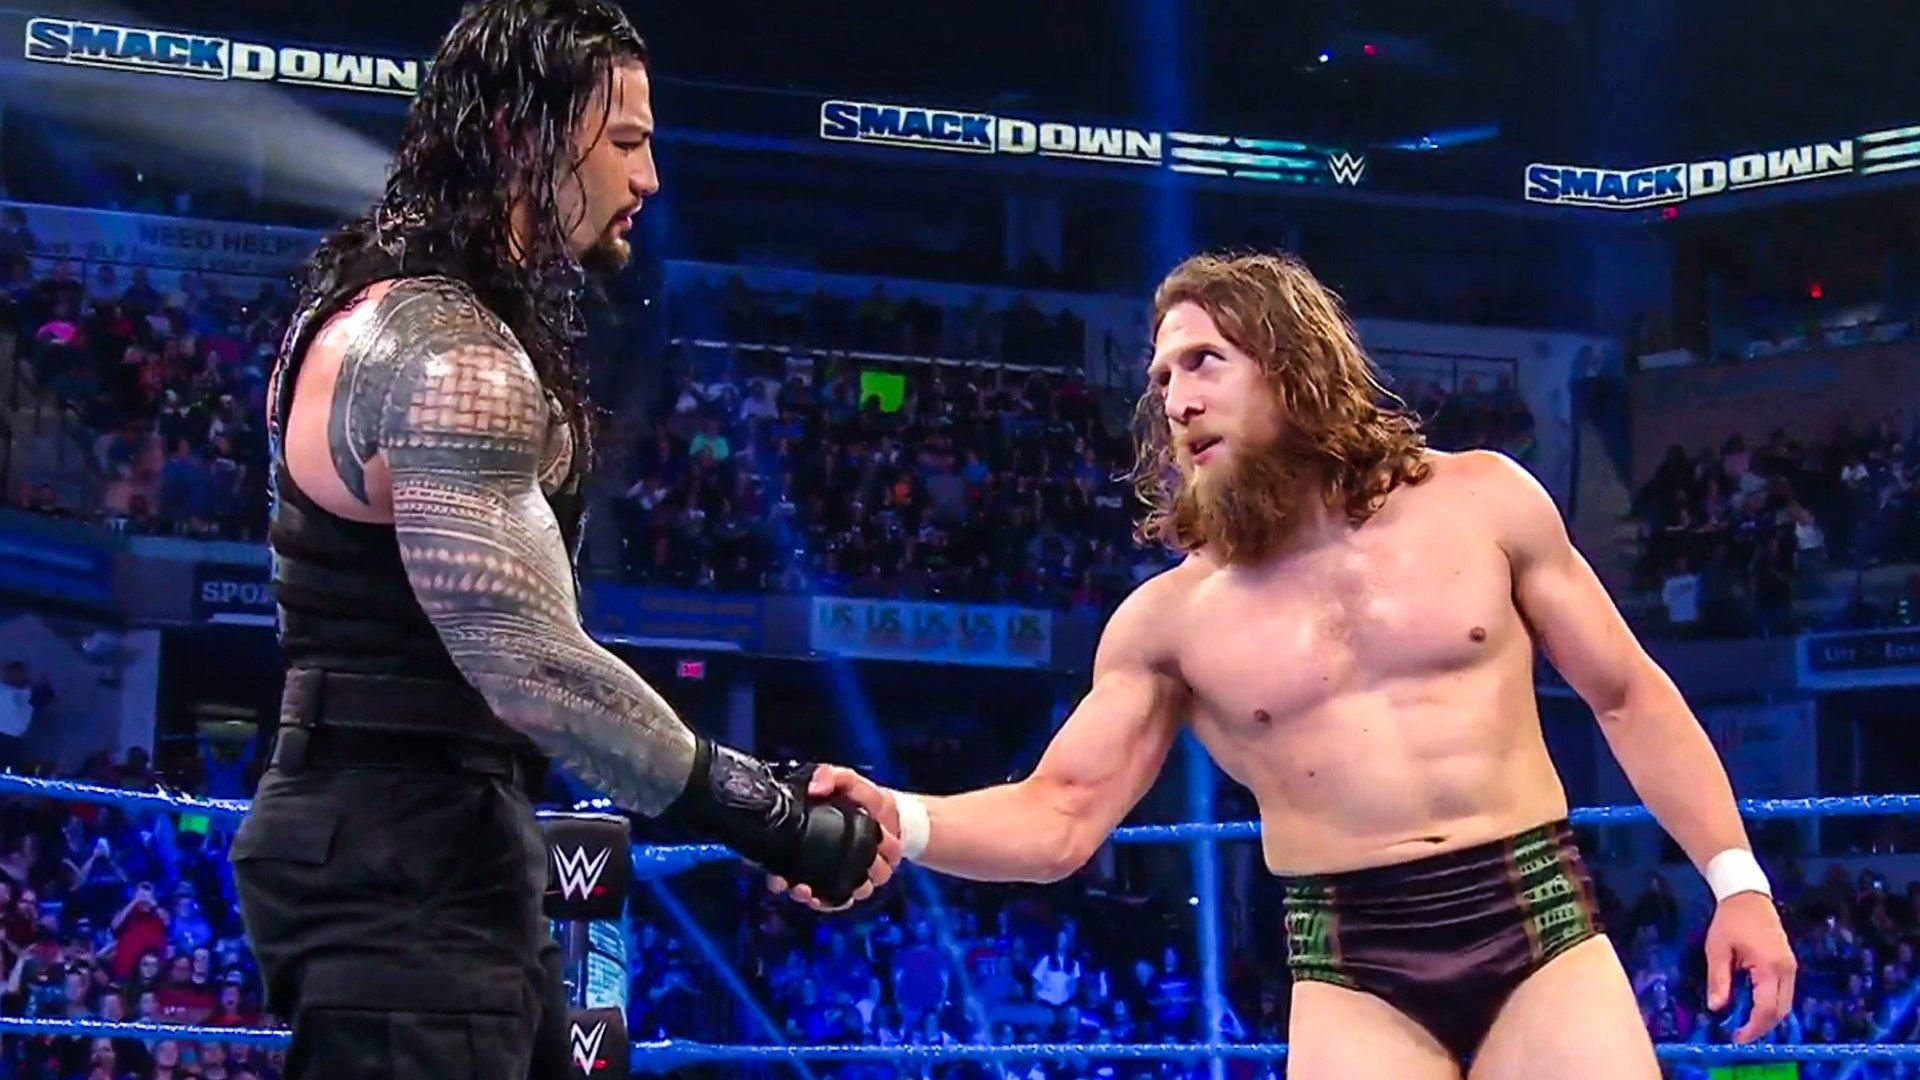 WWE SmackDown results: 4 things we learned as Roman Reigns and Daniel Bryan team up once more